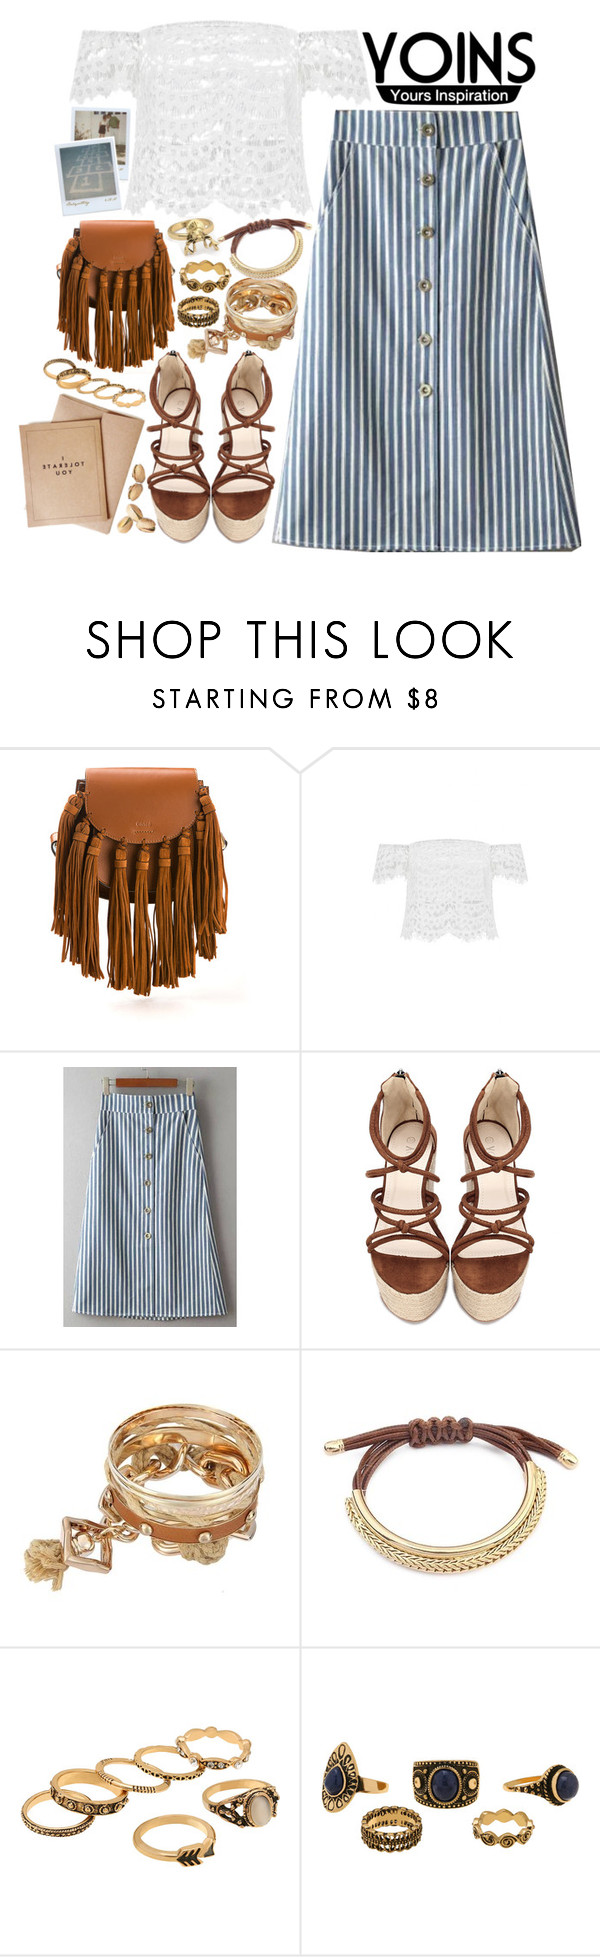 """Yoins: off shoulder top"" by styling-w-mabel ❤ liked on Polyvore featuring Chloé, Polaroid, yoins, yoinscollection and loveyoins"